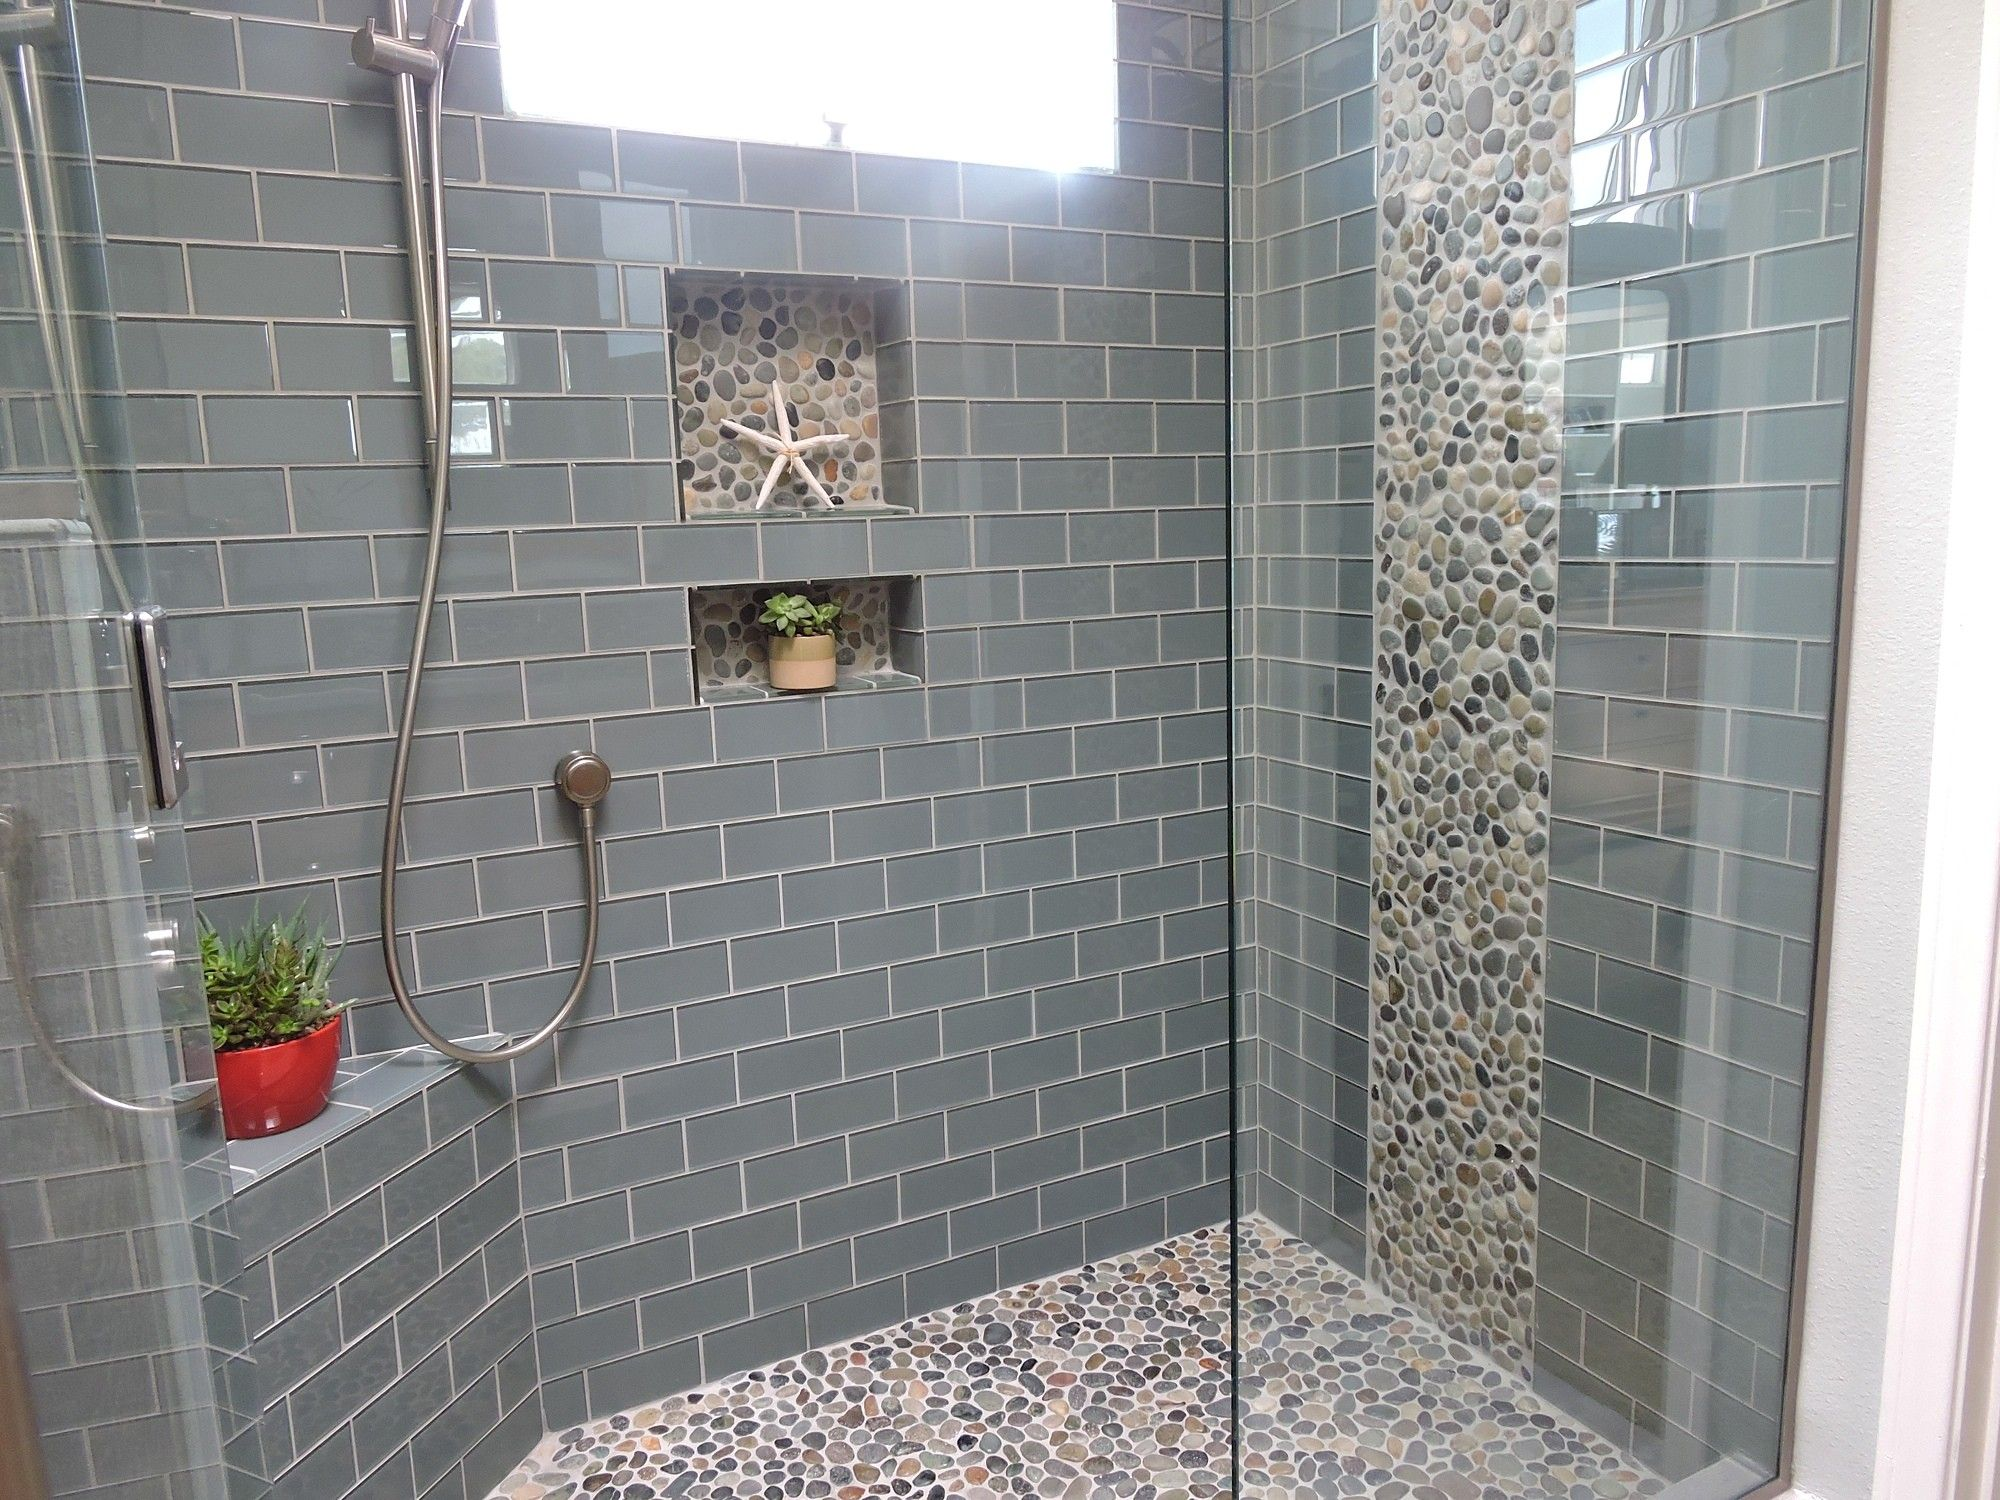 Glass Tile Bathroom Designs Interiorgrey Wall Tile Connectedstainless Steel Shower And